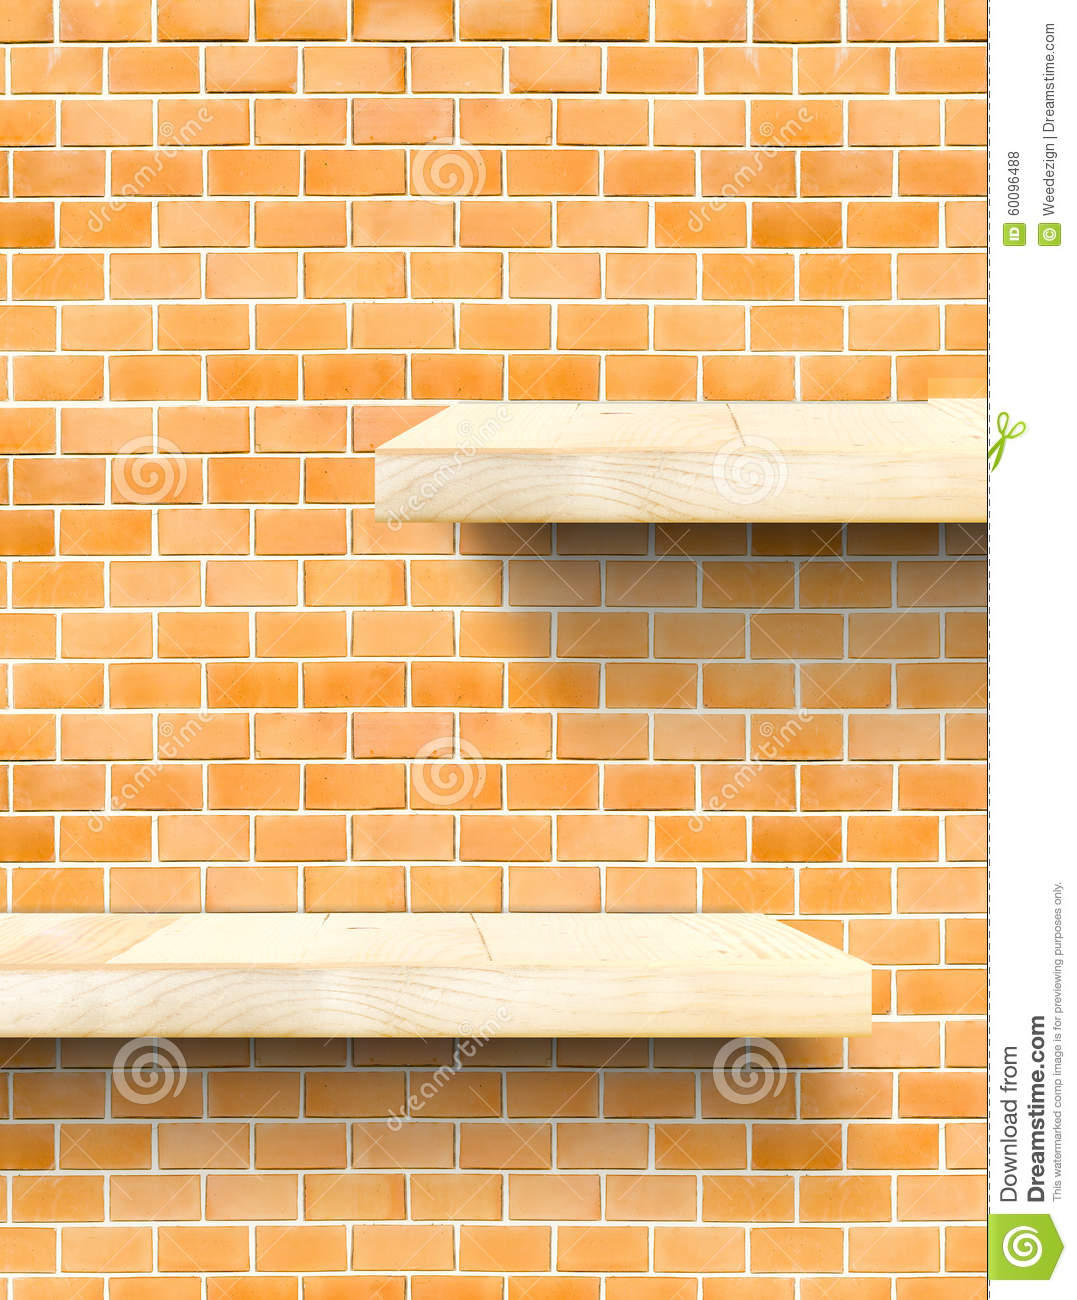 empty wooden table top and shelf at orange bricks wall template